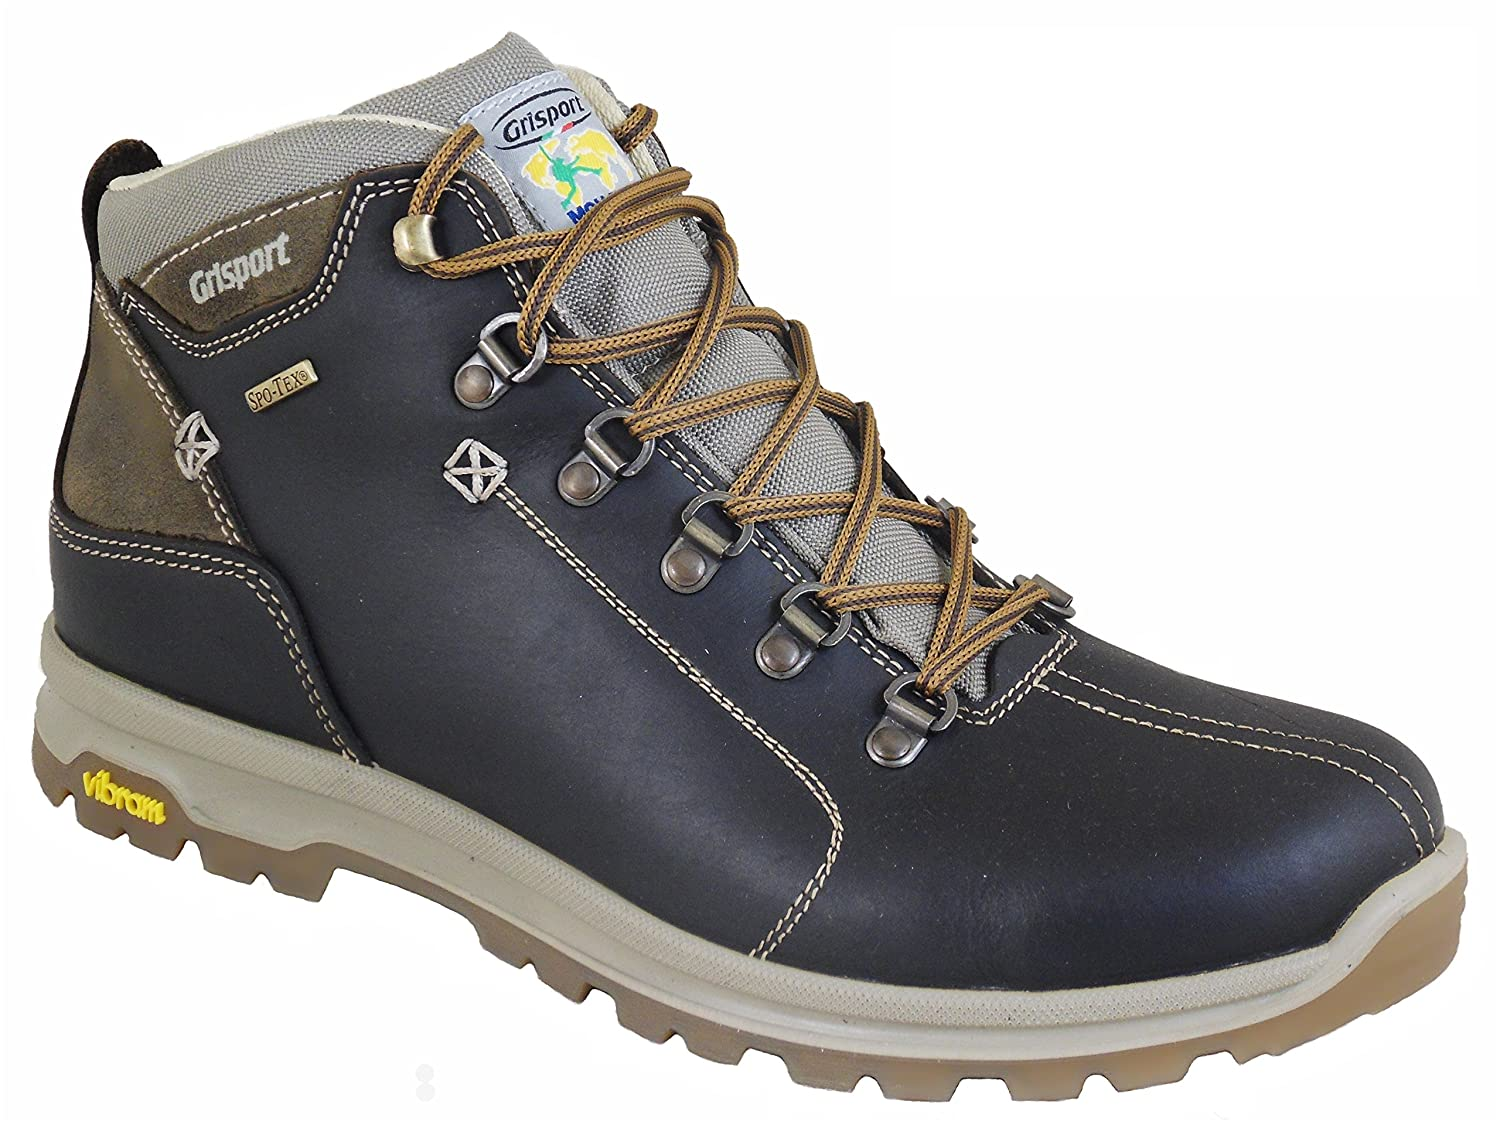 Grisport Aviator Men's Waterproof Hiking Boots Brown